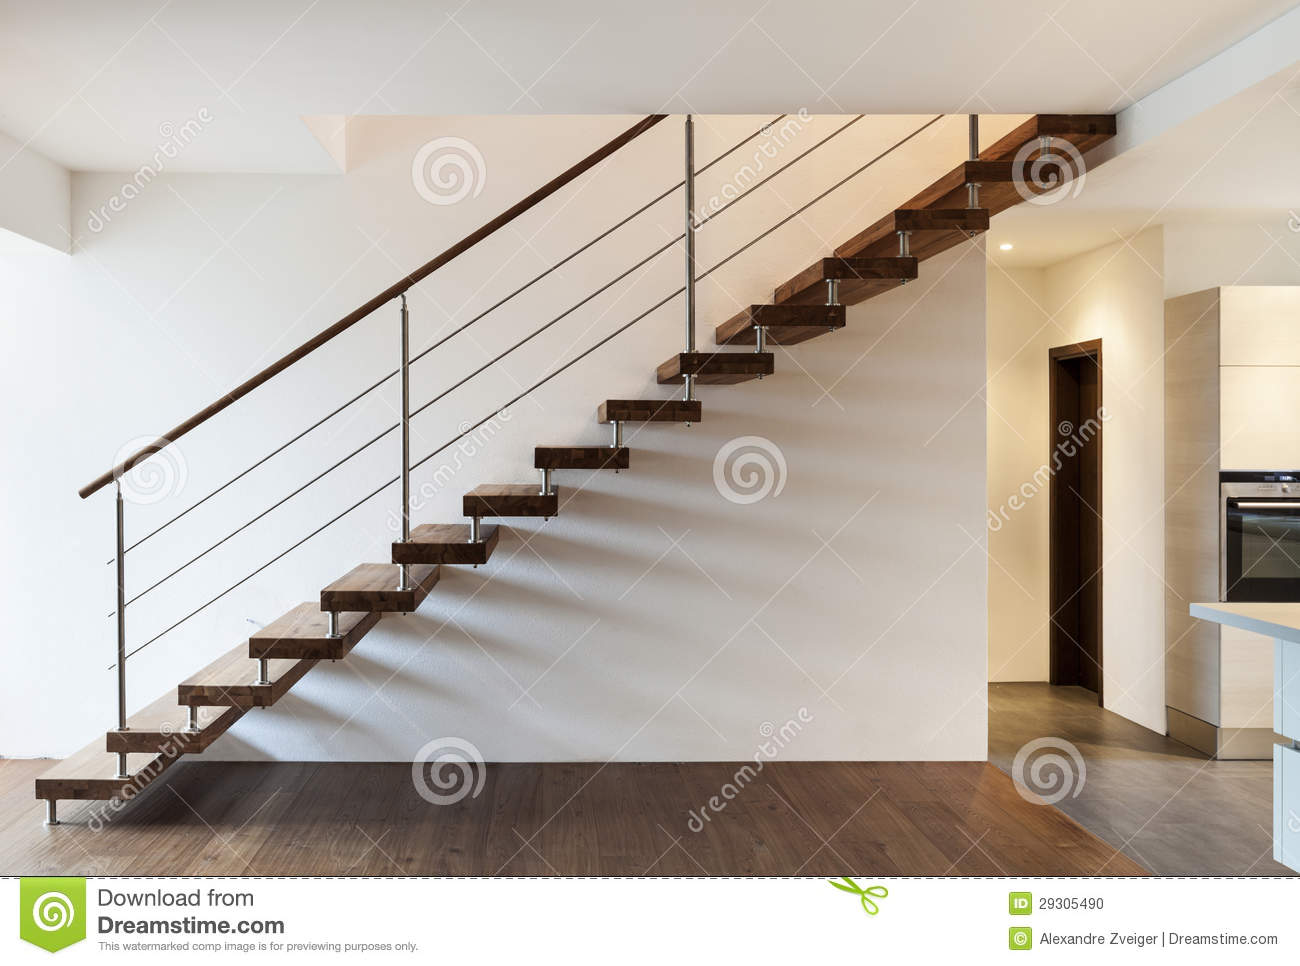 Escalier int rieur photo stock image 29305490 - Photo d escalier d interieur ...